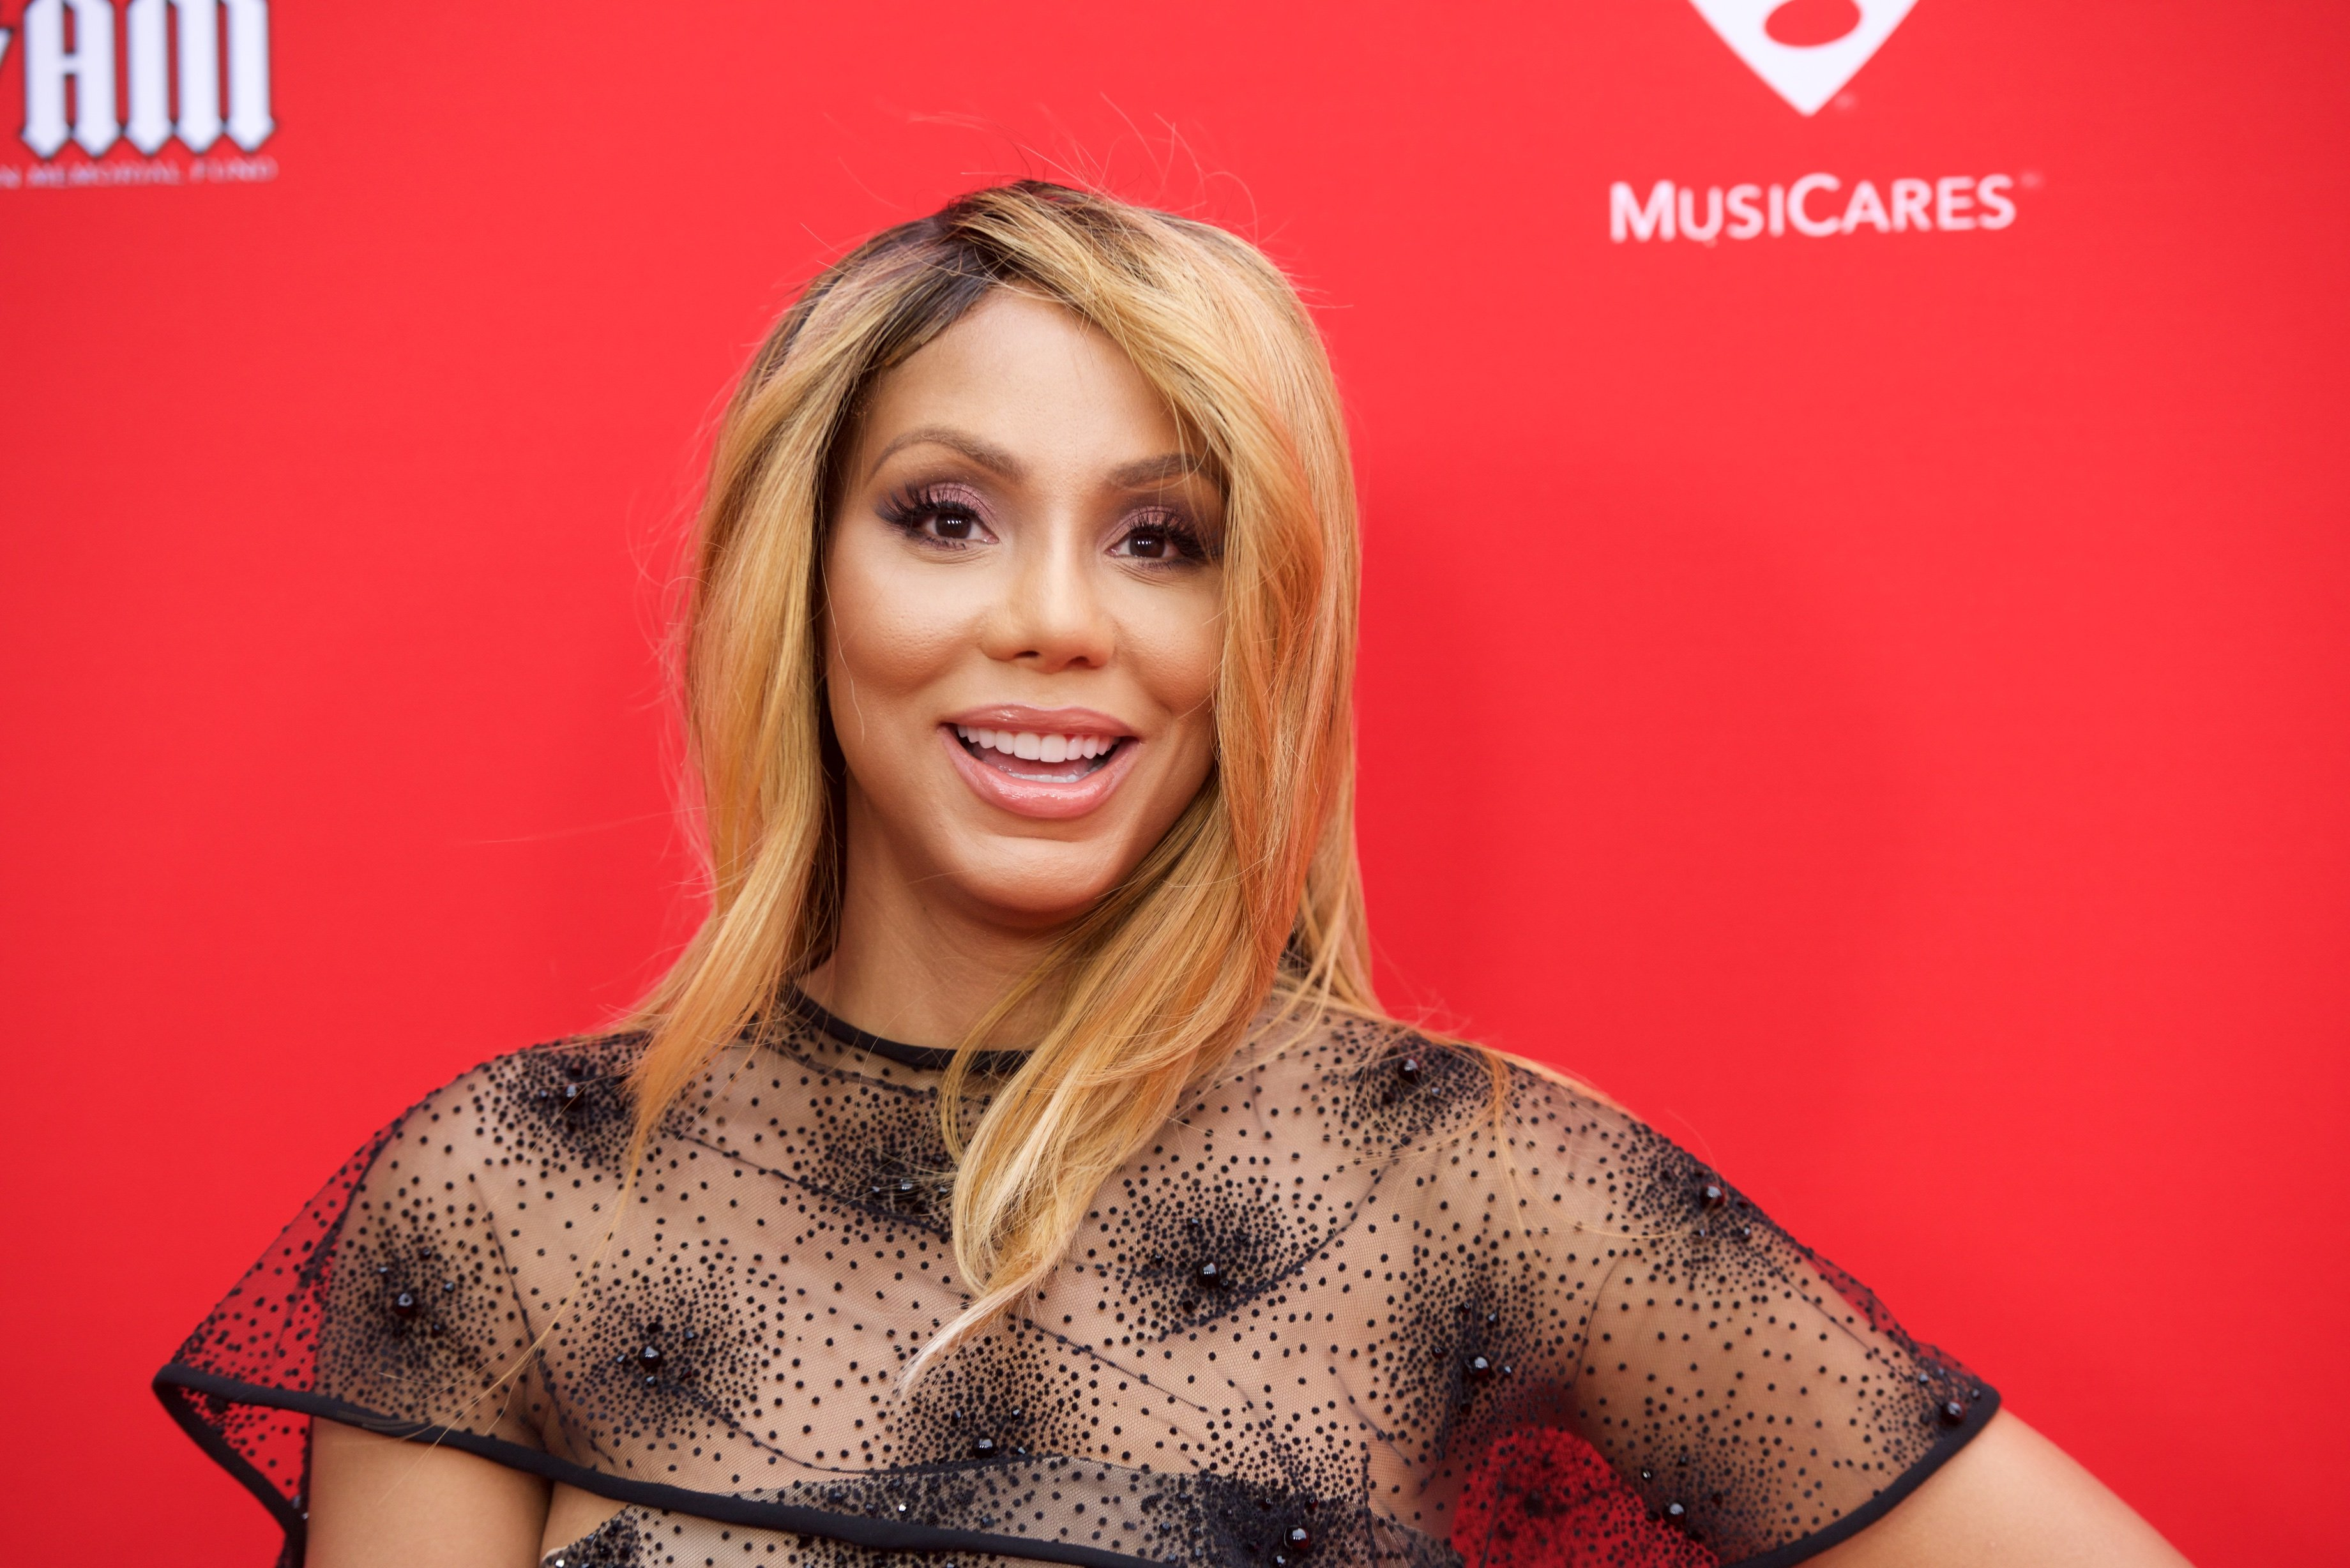 Tamar Braxton at the 12th Annual MusiCares MAP Fund Tribute Concert in Los Angeles in May 2016. | Photo: Getty Images